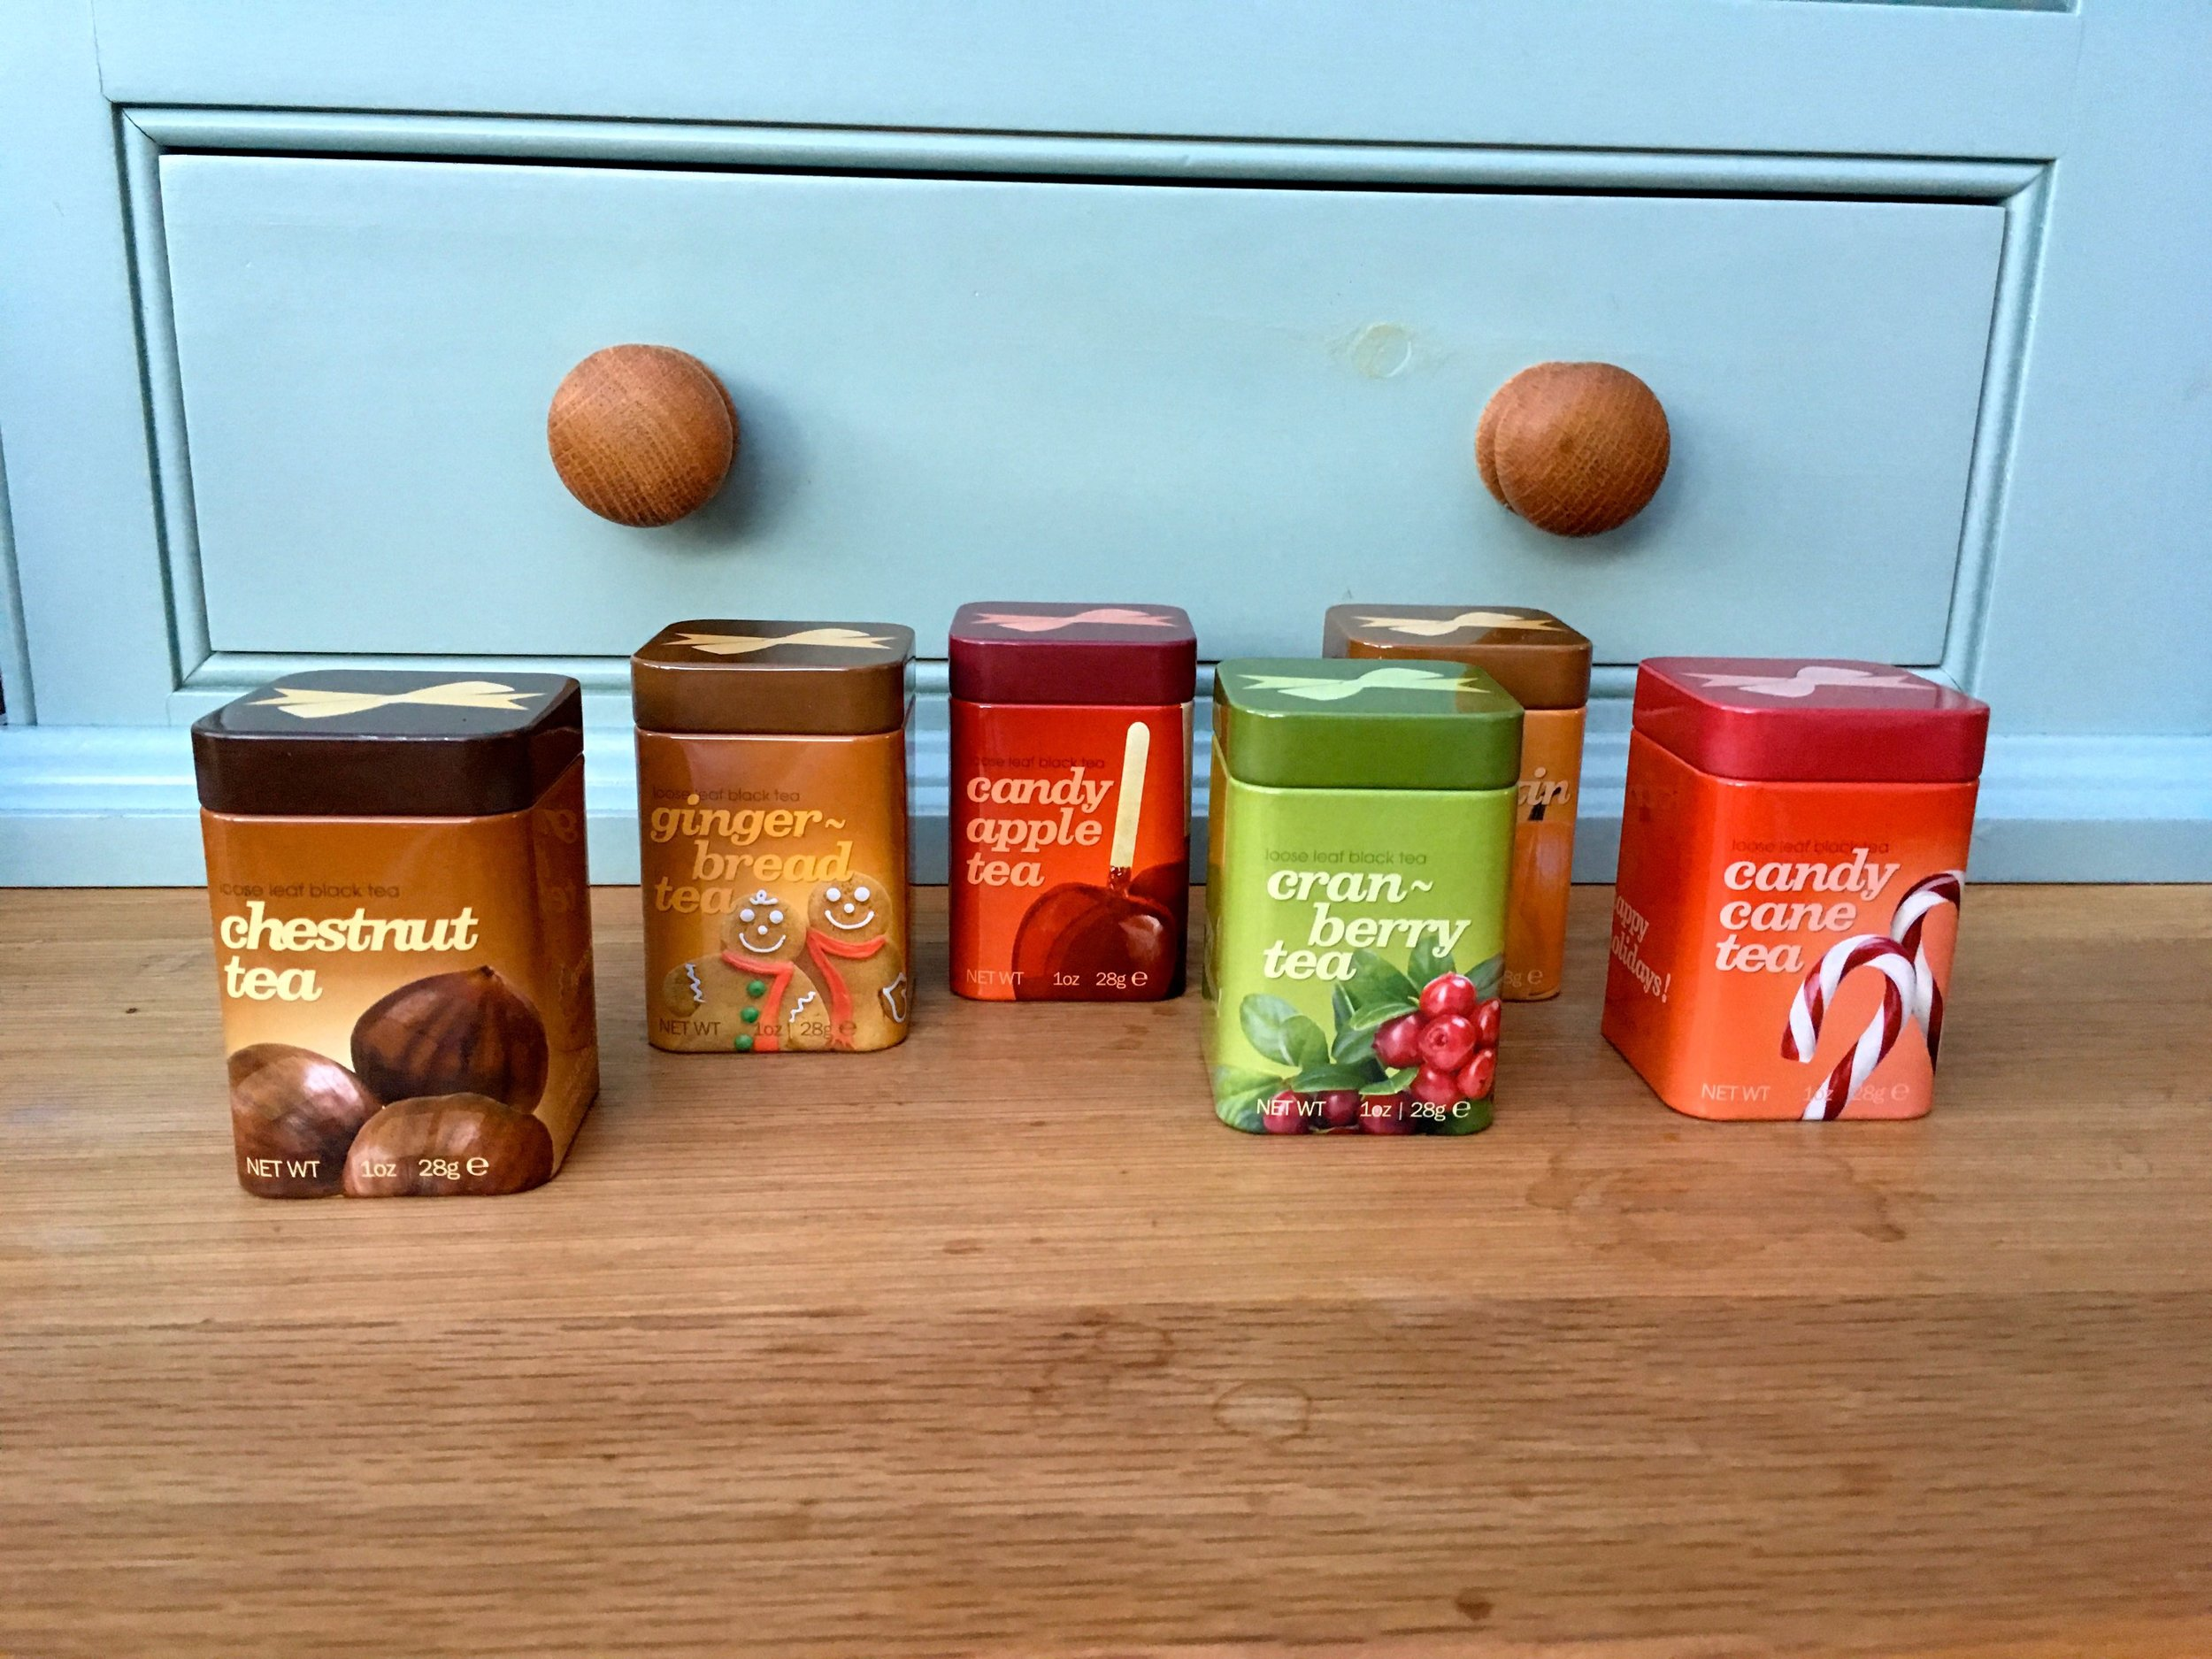 CHESTNUT, GINGERBREAD, CANDY APPLE, CRANBERRY, PUMPKIN AND CANDY CANE TEAS IN MINIATURE TINS, FULL OF HOLIDAY CHEER